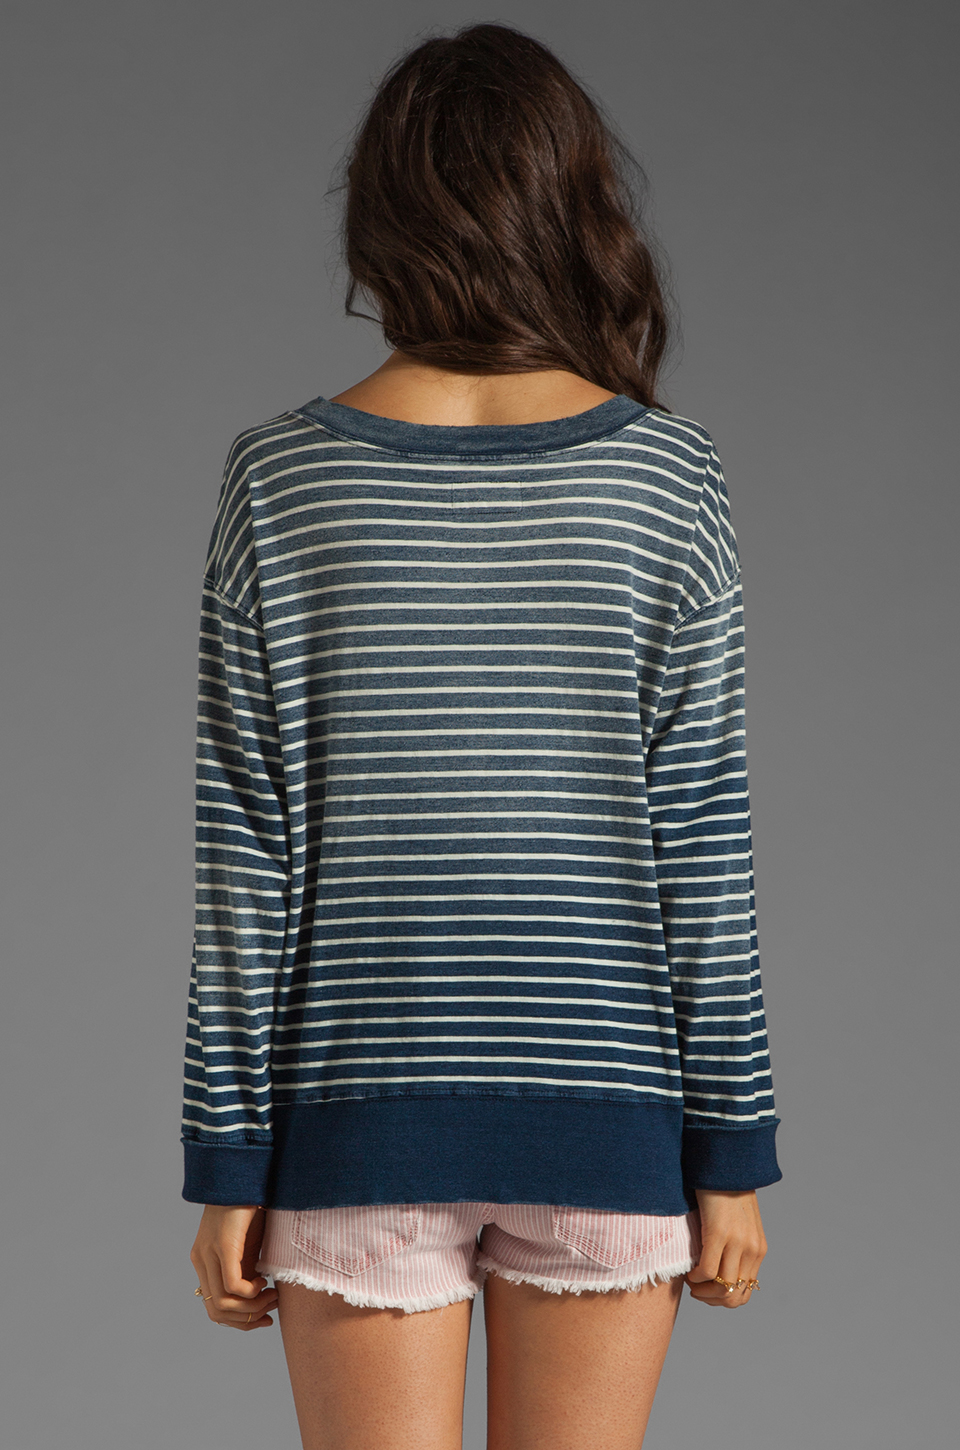 Current/Elliott The Stadium Sweatshirt in Indigo Stripe